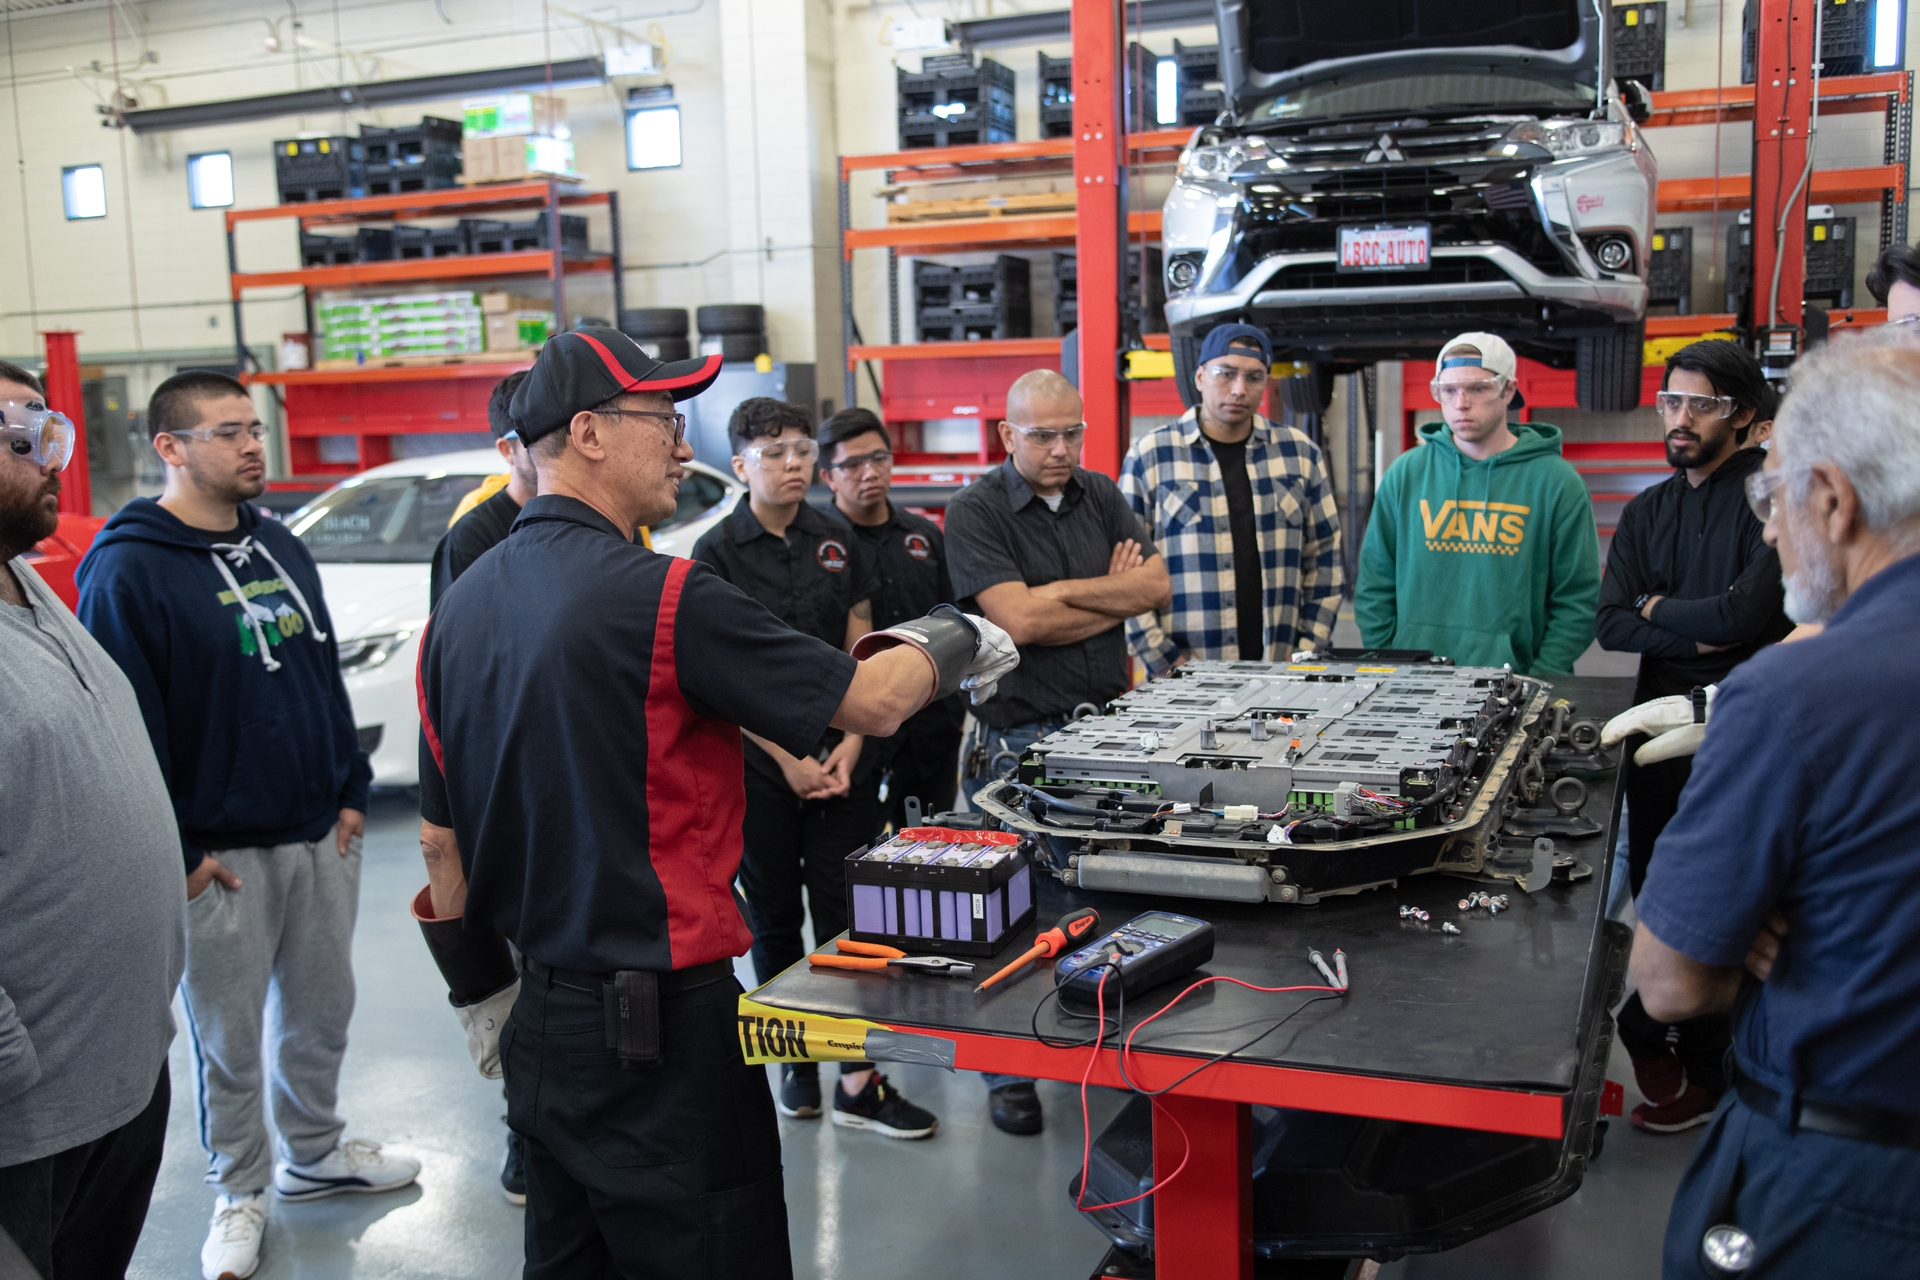 Students learn how to service electric cars and heavy-duty electric vehicles in Long Beach City College's Advanced Transportation Technology Program.